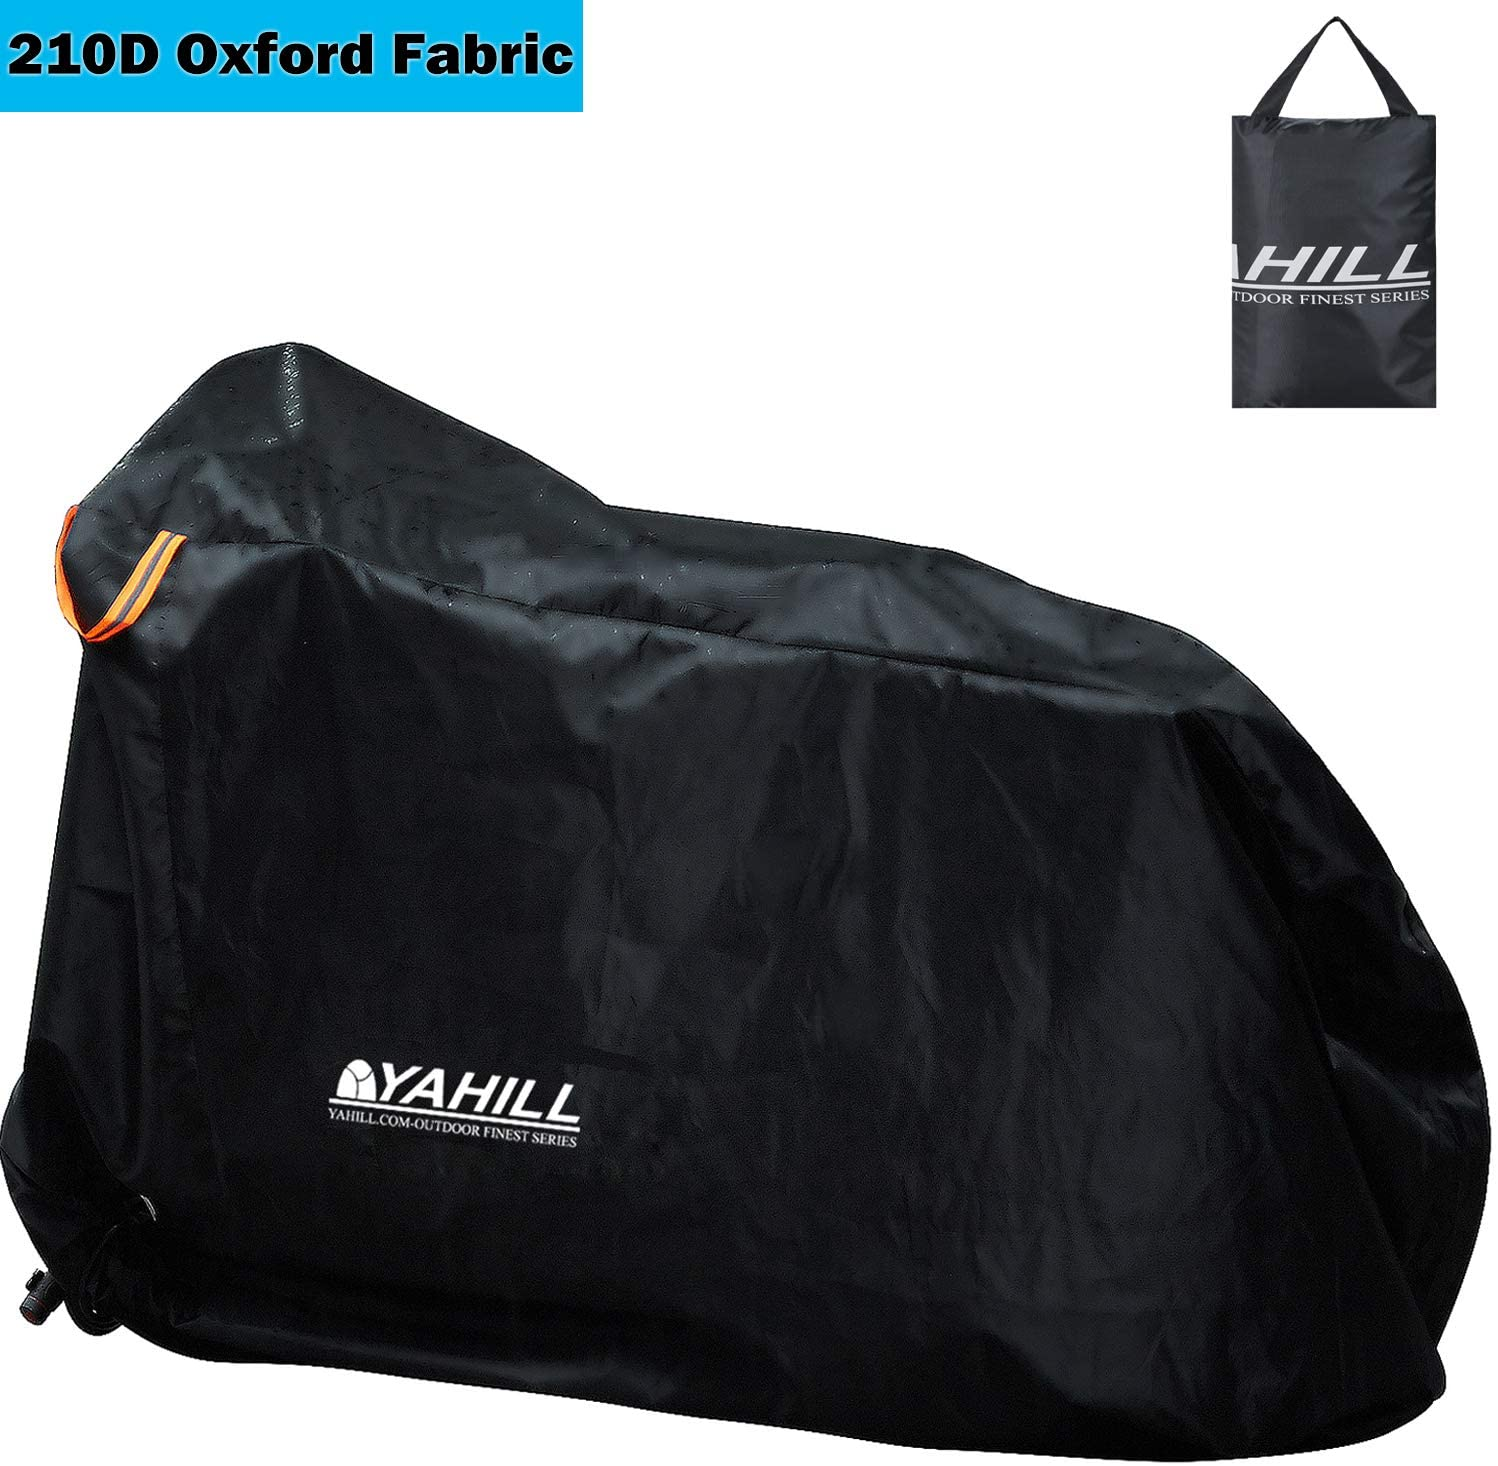 YAHILL Waterproof Bike Cover, Bicycle Rain Cover-210D Polyester Anti Dust UV Protection Cover, Outdoor Rainproof Windproof Cover for Mountain Road Electric Moto Bikes with Lock Hole Storage Bag-L,XL